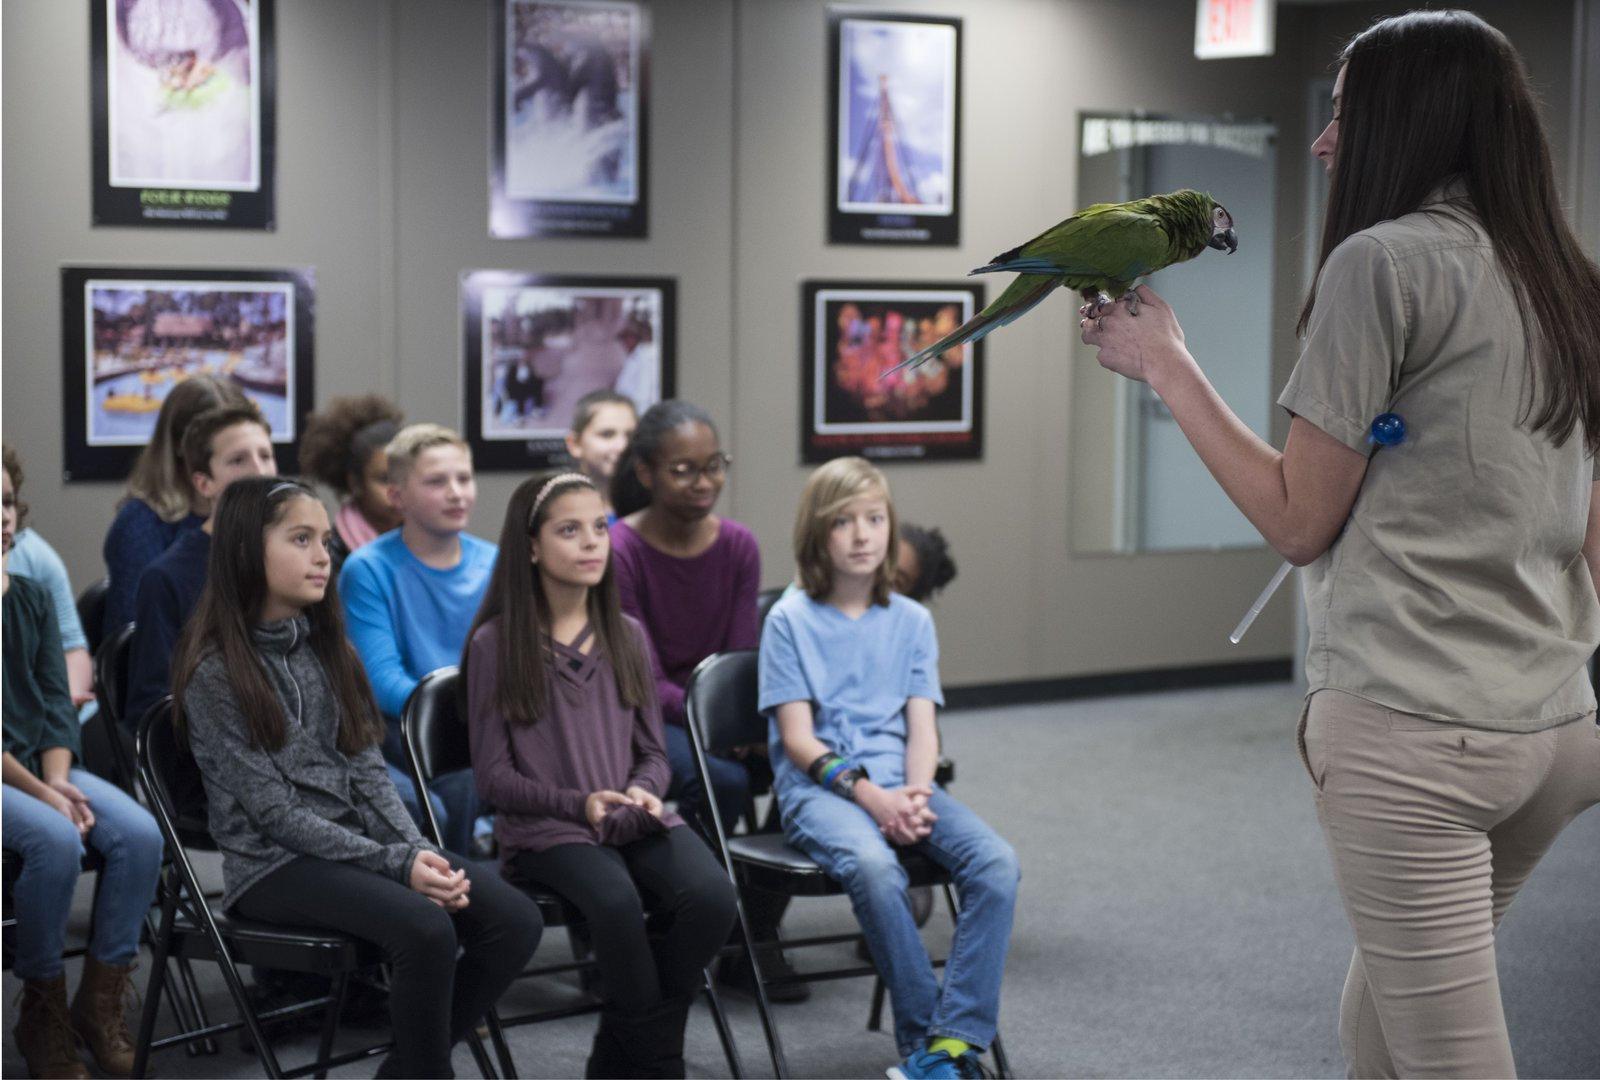 PHOTO__Educator_Alicia_with_parrot.jpg